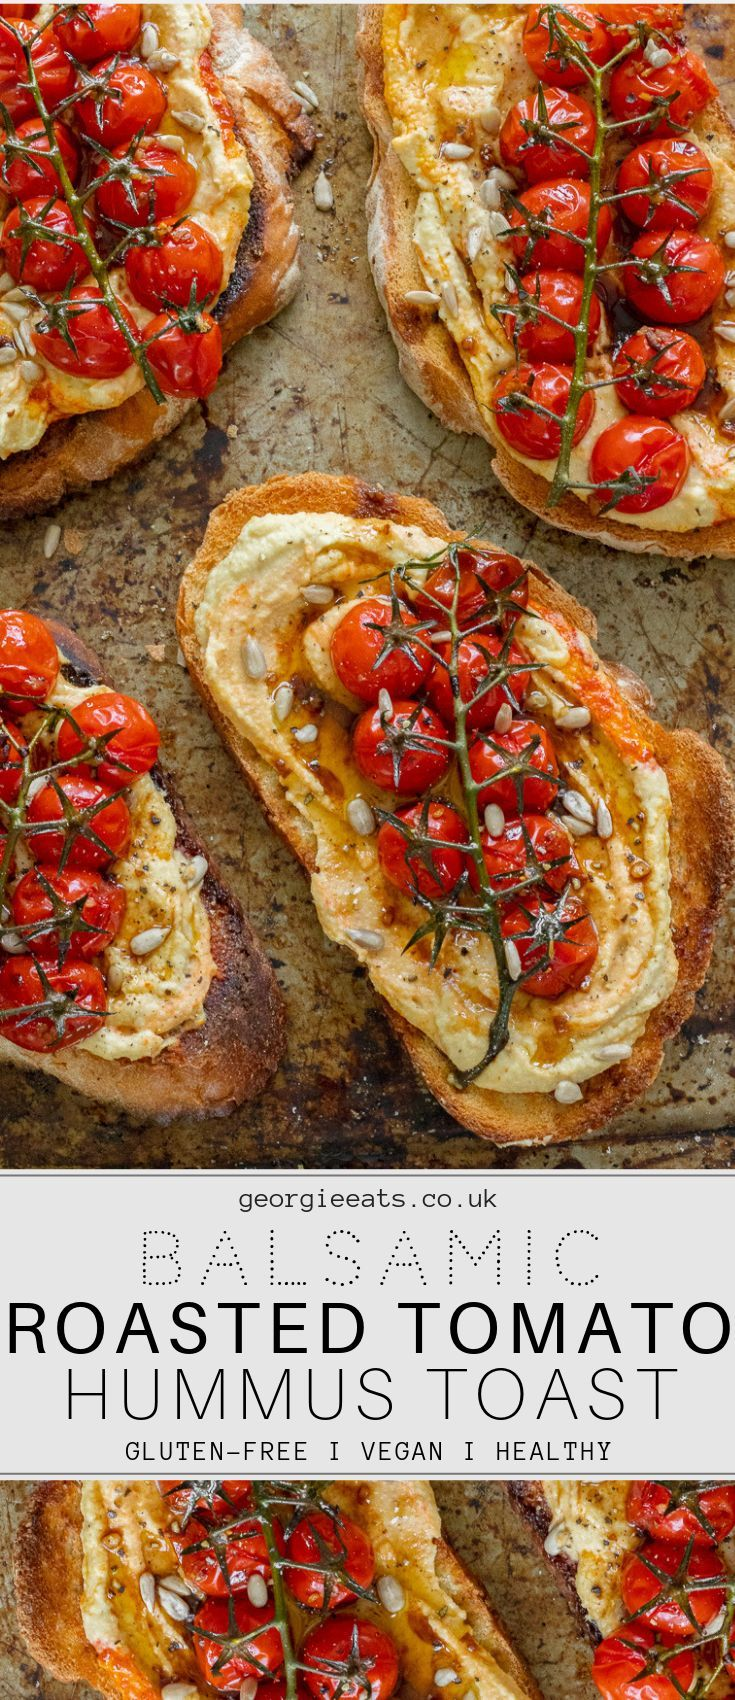 Balsamic Roasted Tomatoes & Hummus Toast I Georgie Eats